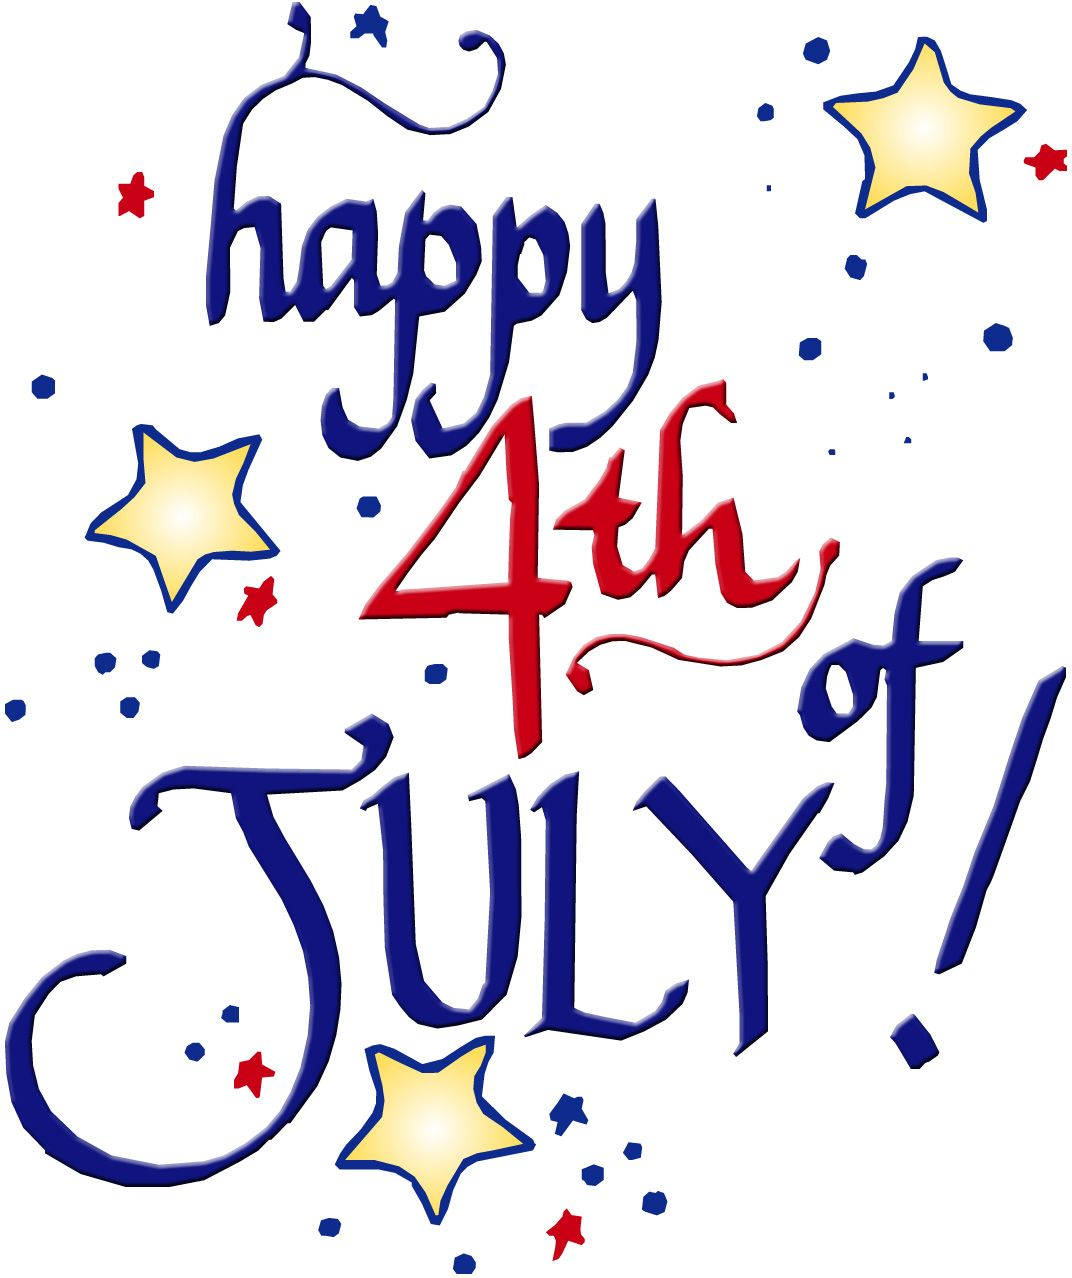 Clipart happy 4th of july vector freeuse library Happy 4th of July | Other | 4th of july clipart, 4th of july images ... vector freeuse library